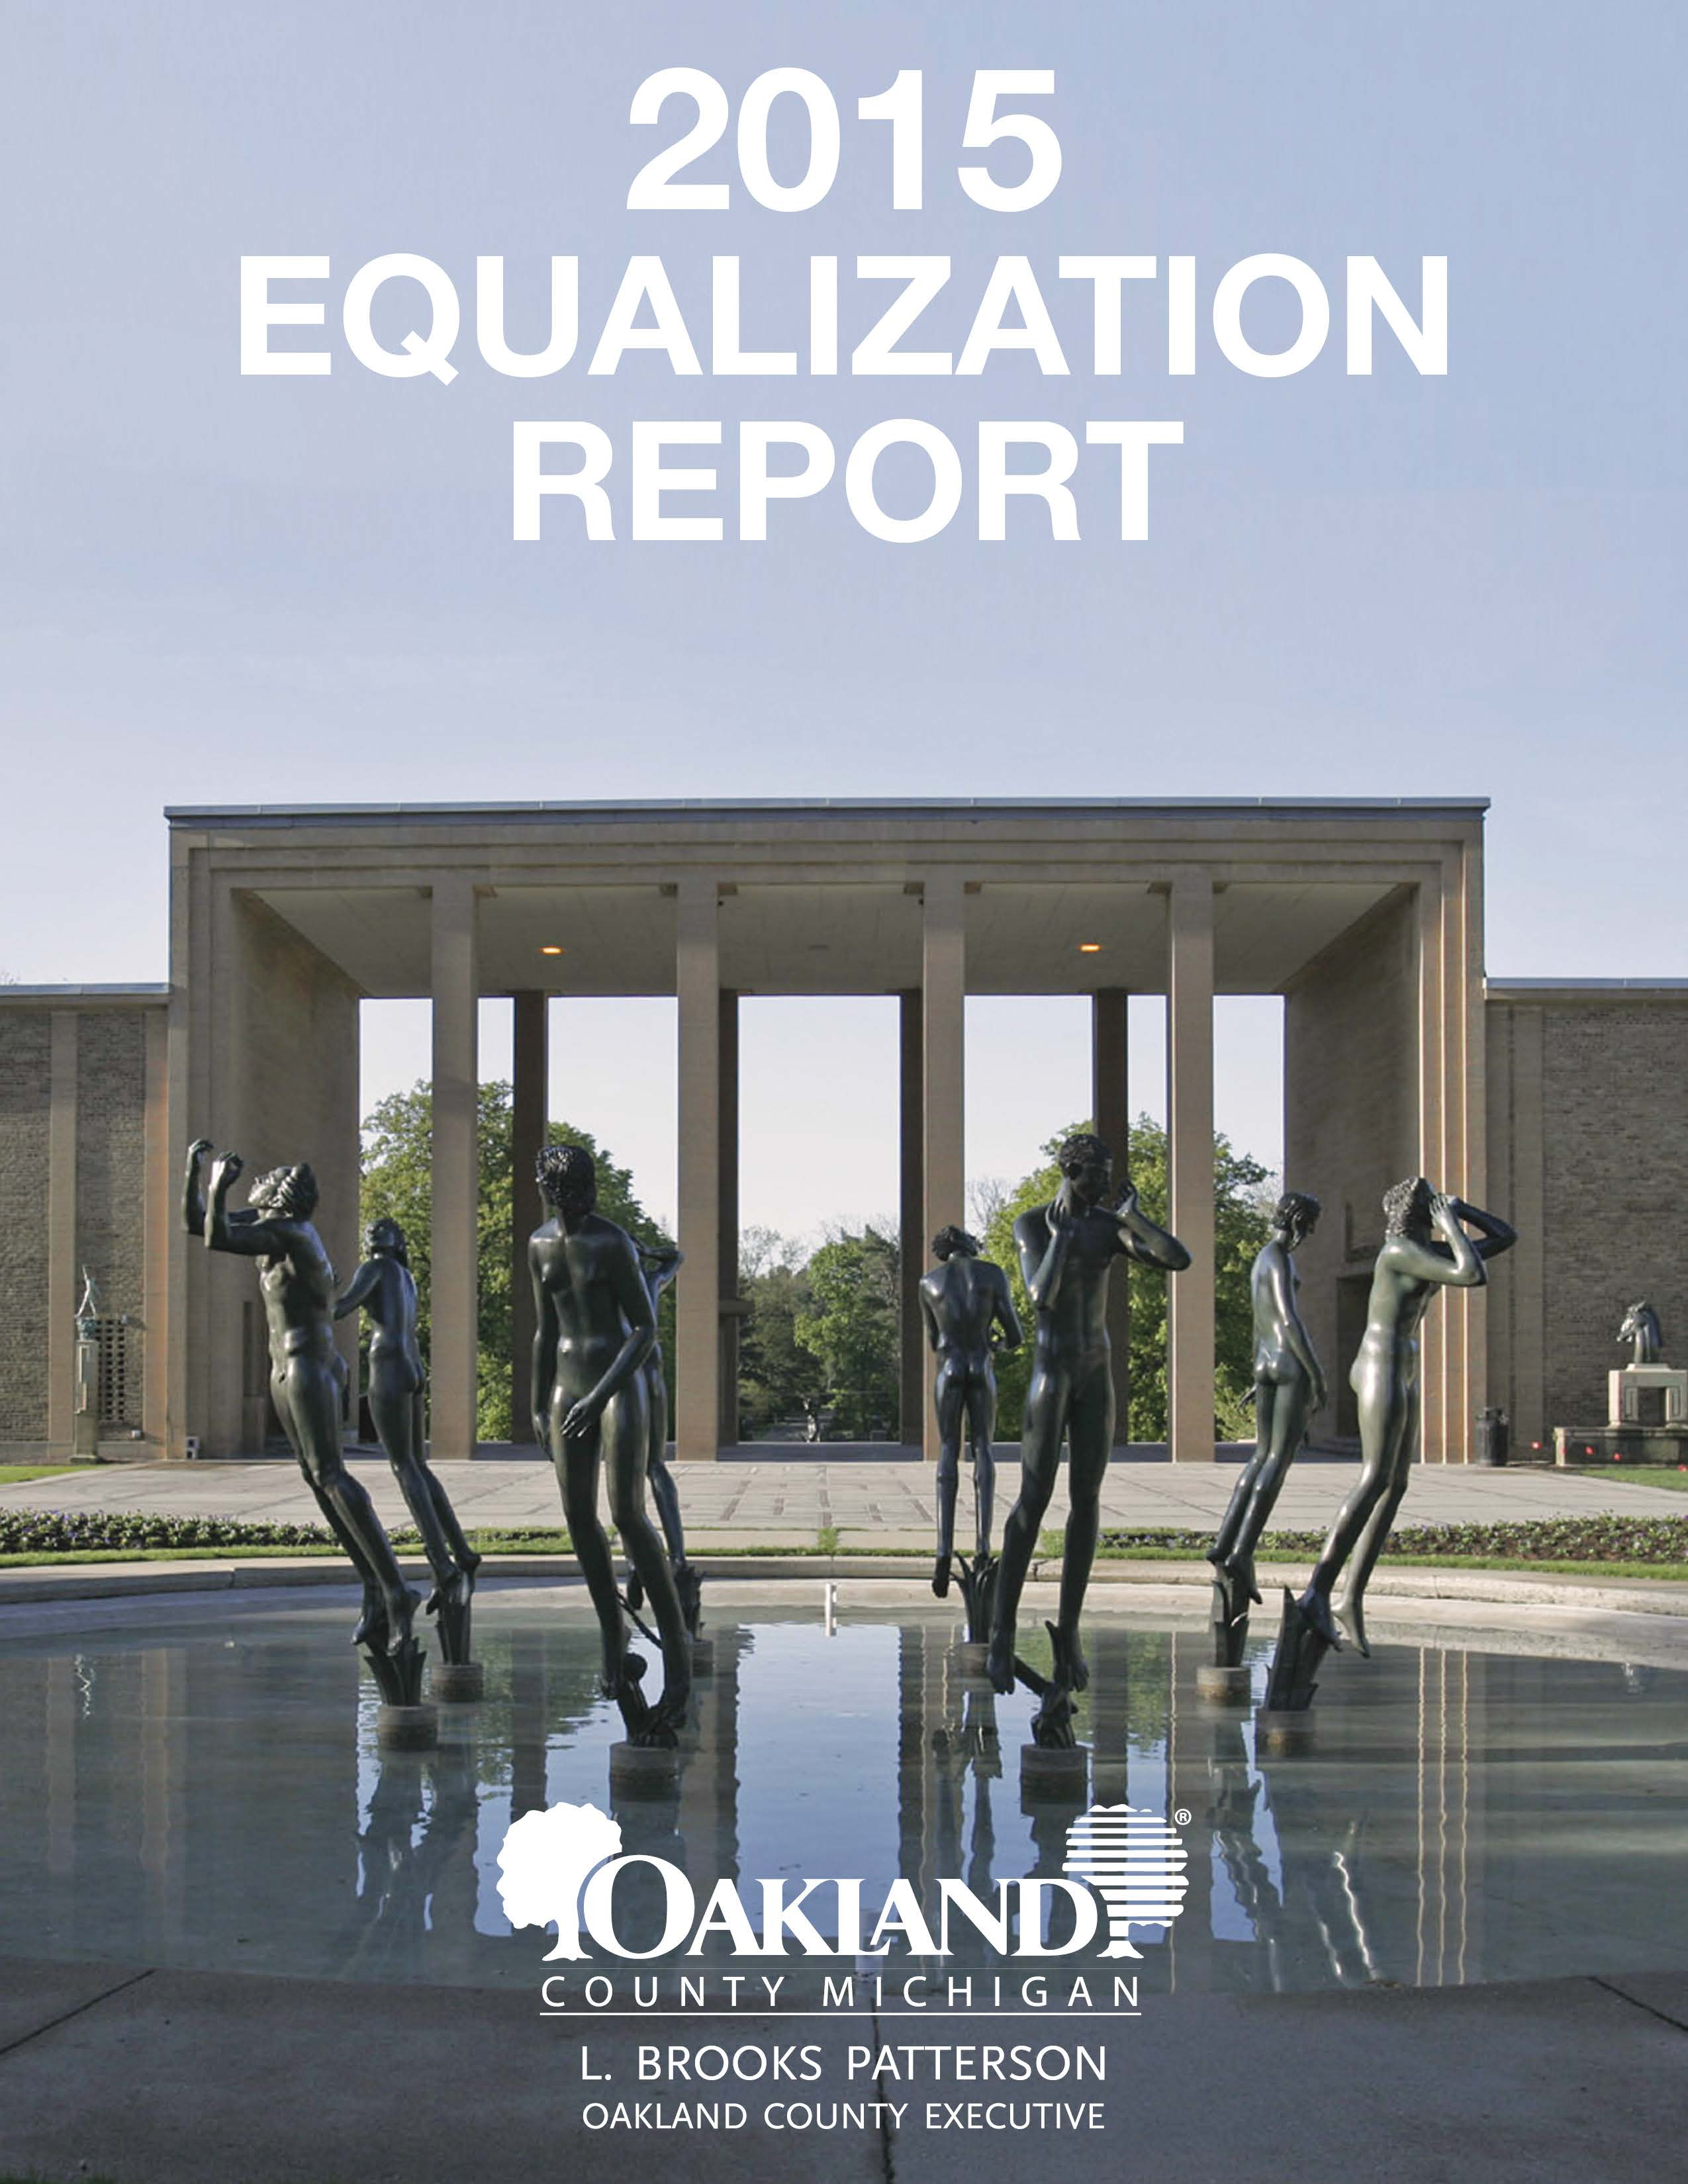 2015 Equalization Cover.jpg